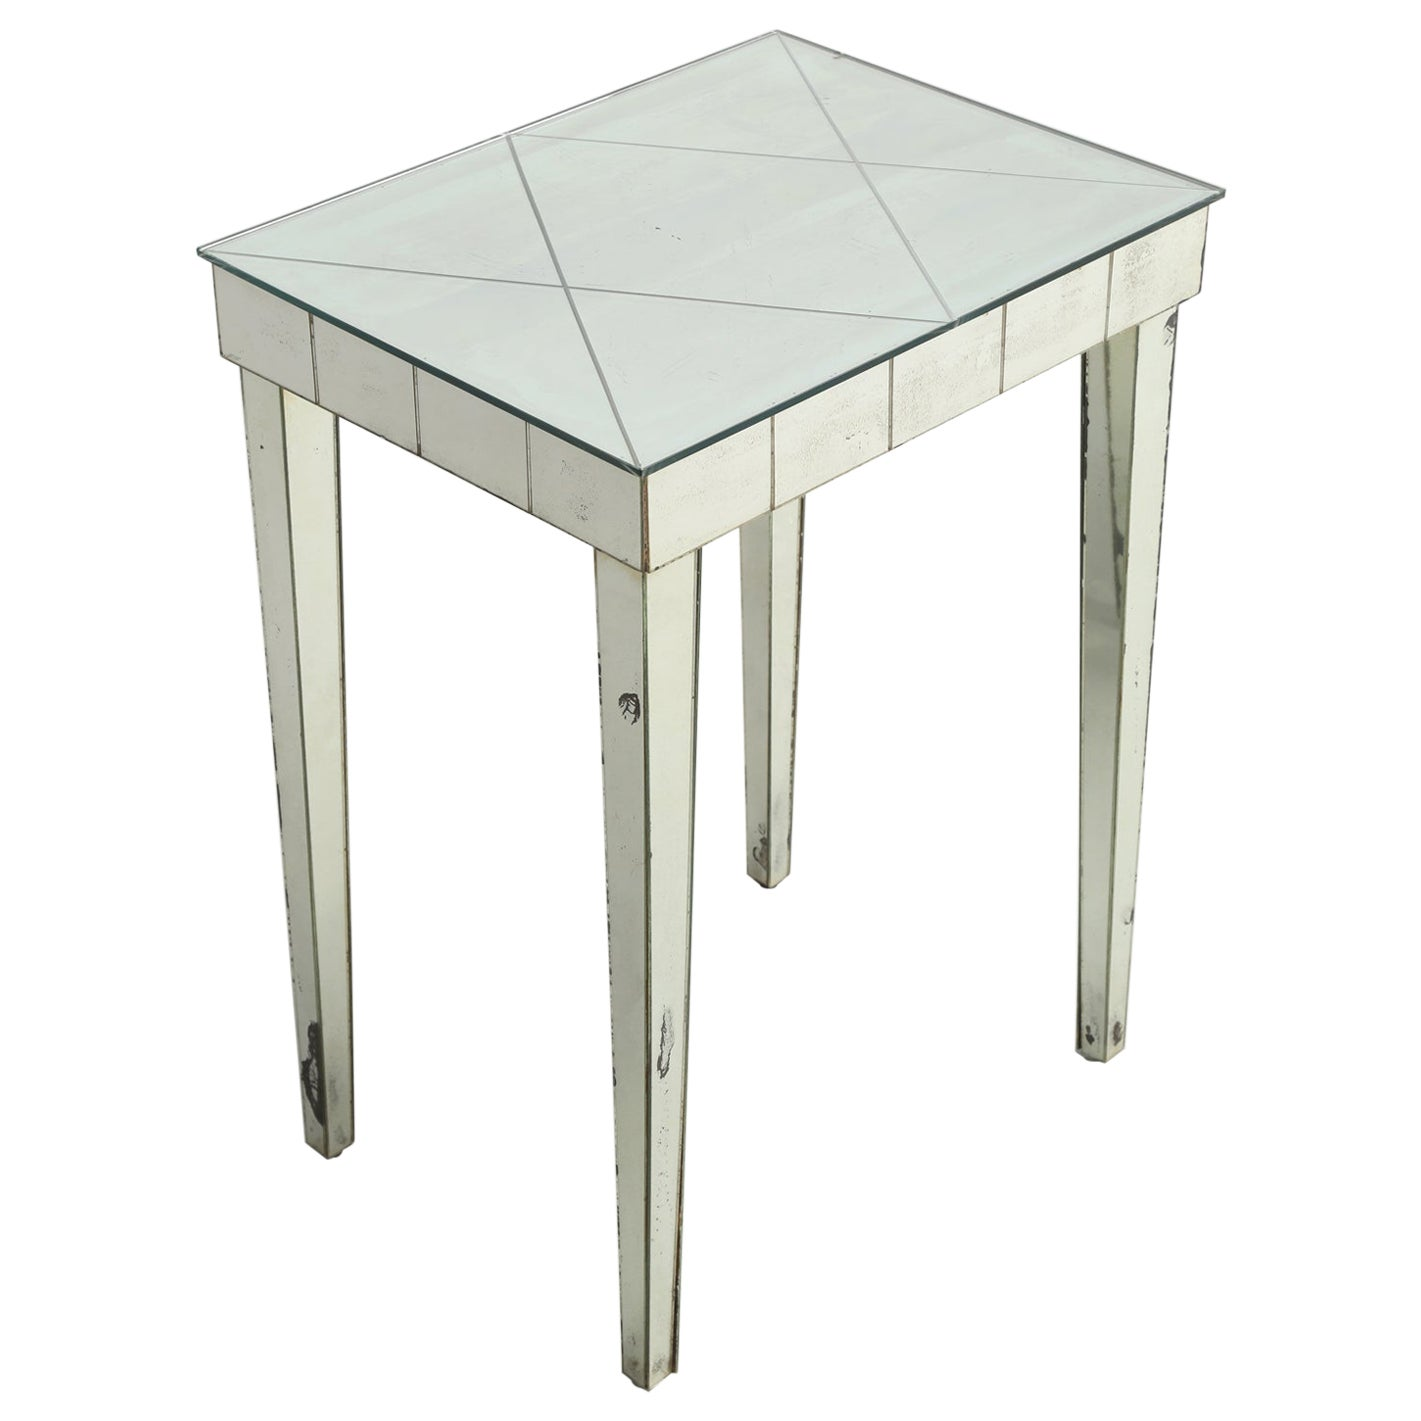 Vintage Mid-Century Modern Mirror End Table or Side Table